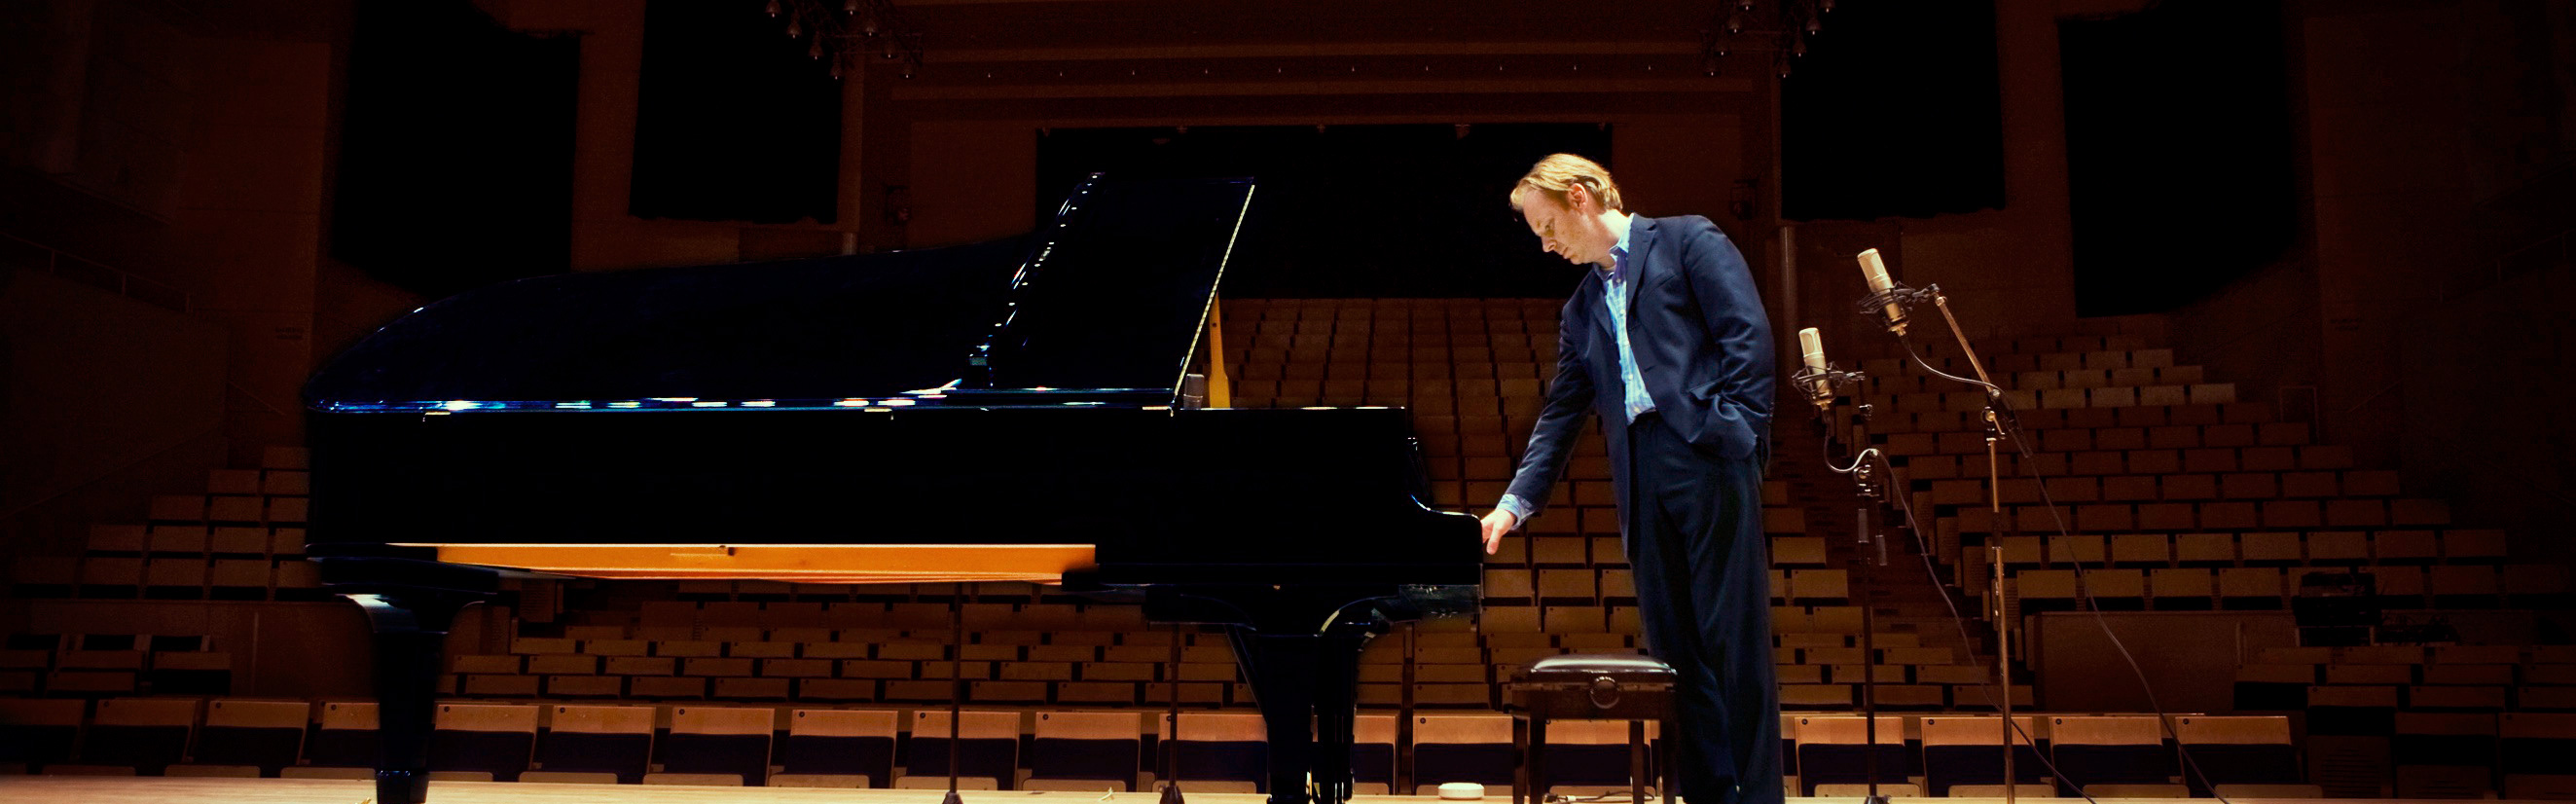 Music on Park Avenue with Per Tengstrand & Opus 21: Beethoven Concerto No. 4, At Scandinavia House